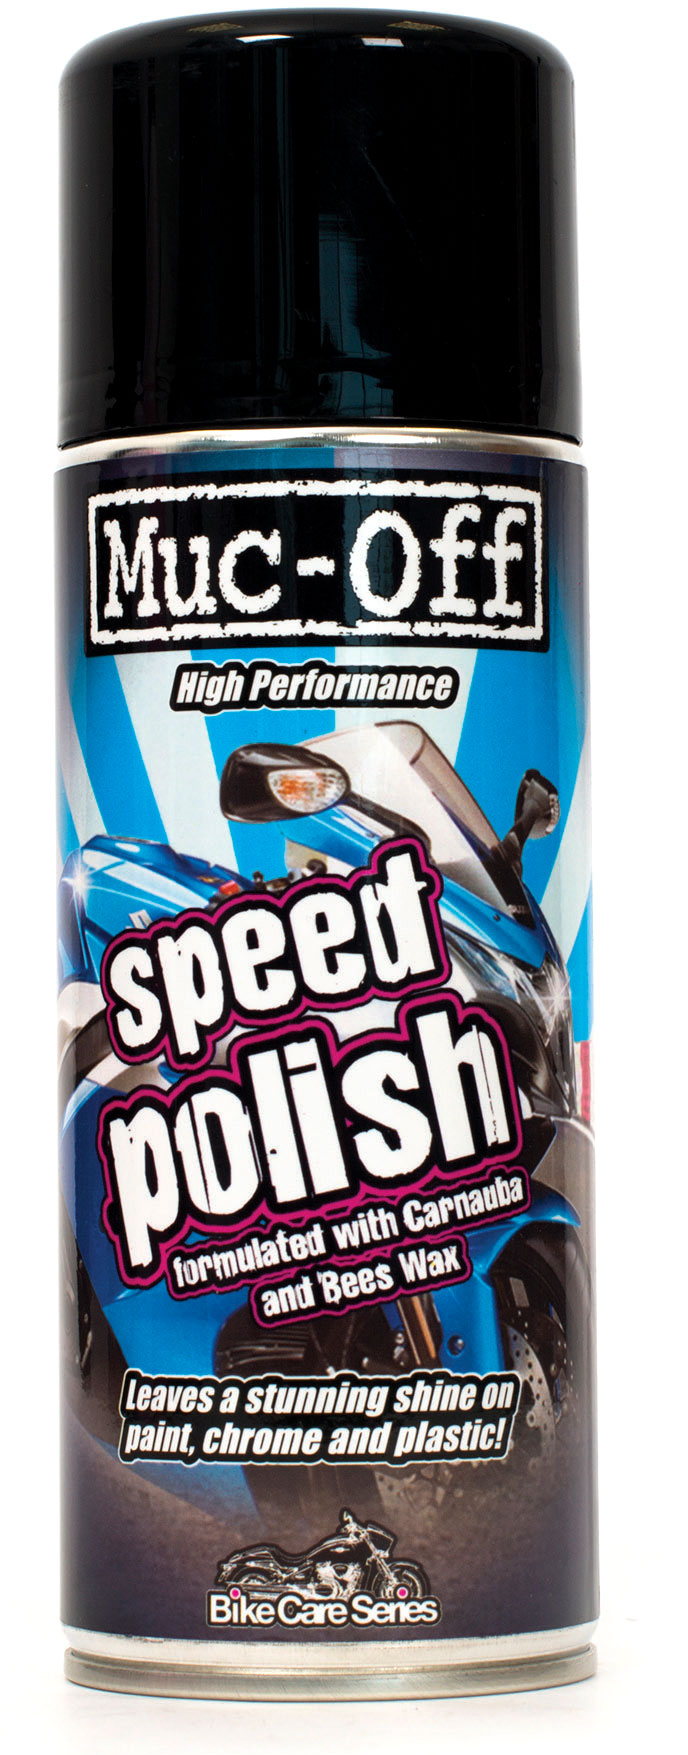 Muc-Off Speed Polish, Politur/Wax - 400 ml 210-1203-12